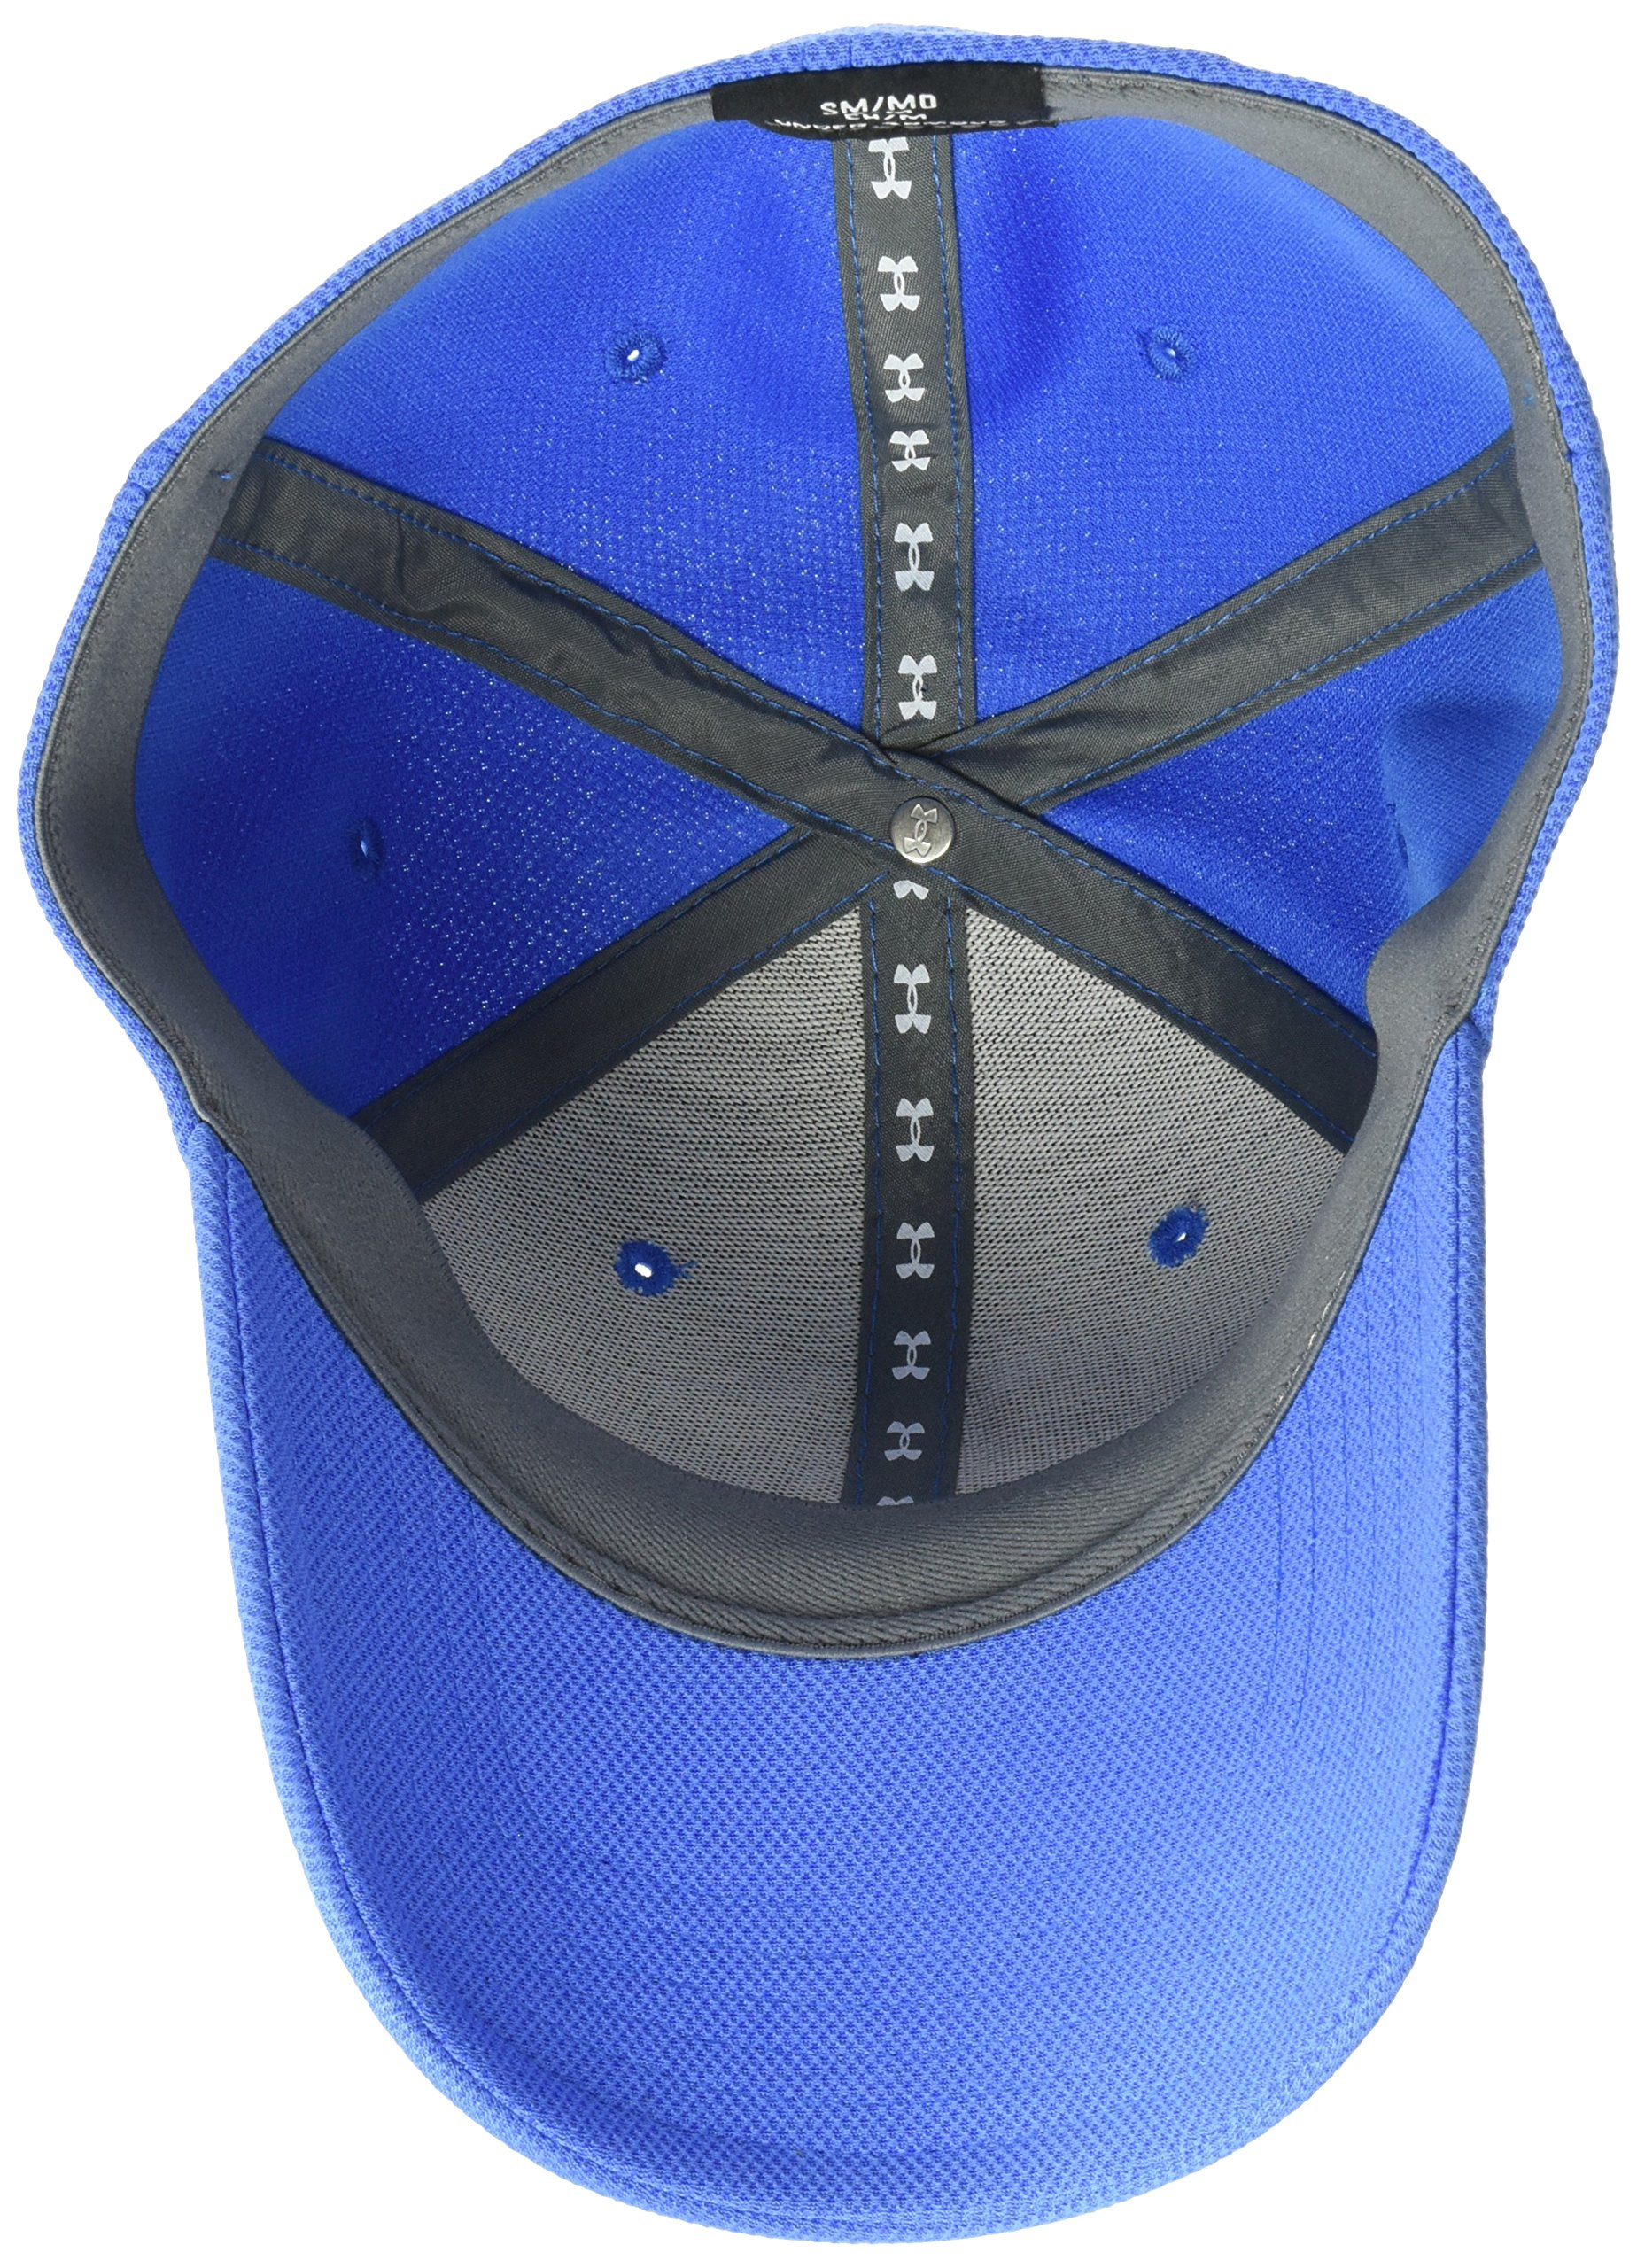 Under Armour Men s Blitzing 3.0 Cap - 1305036-600-P   Outdoor Recreation    Sports   Outdoors - tibs d5749df01f6f